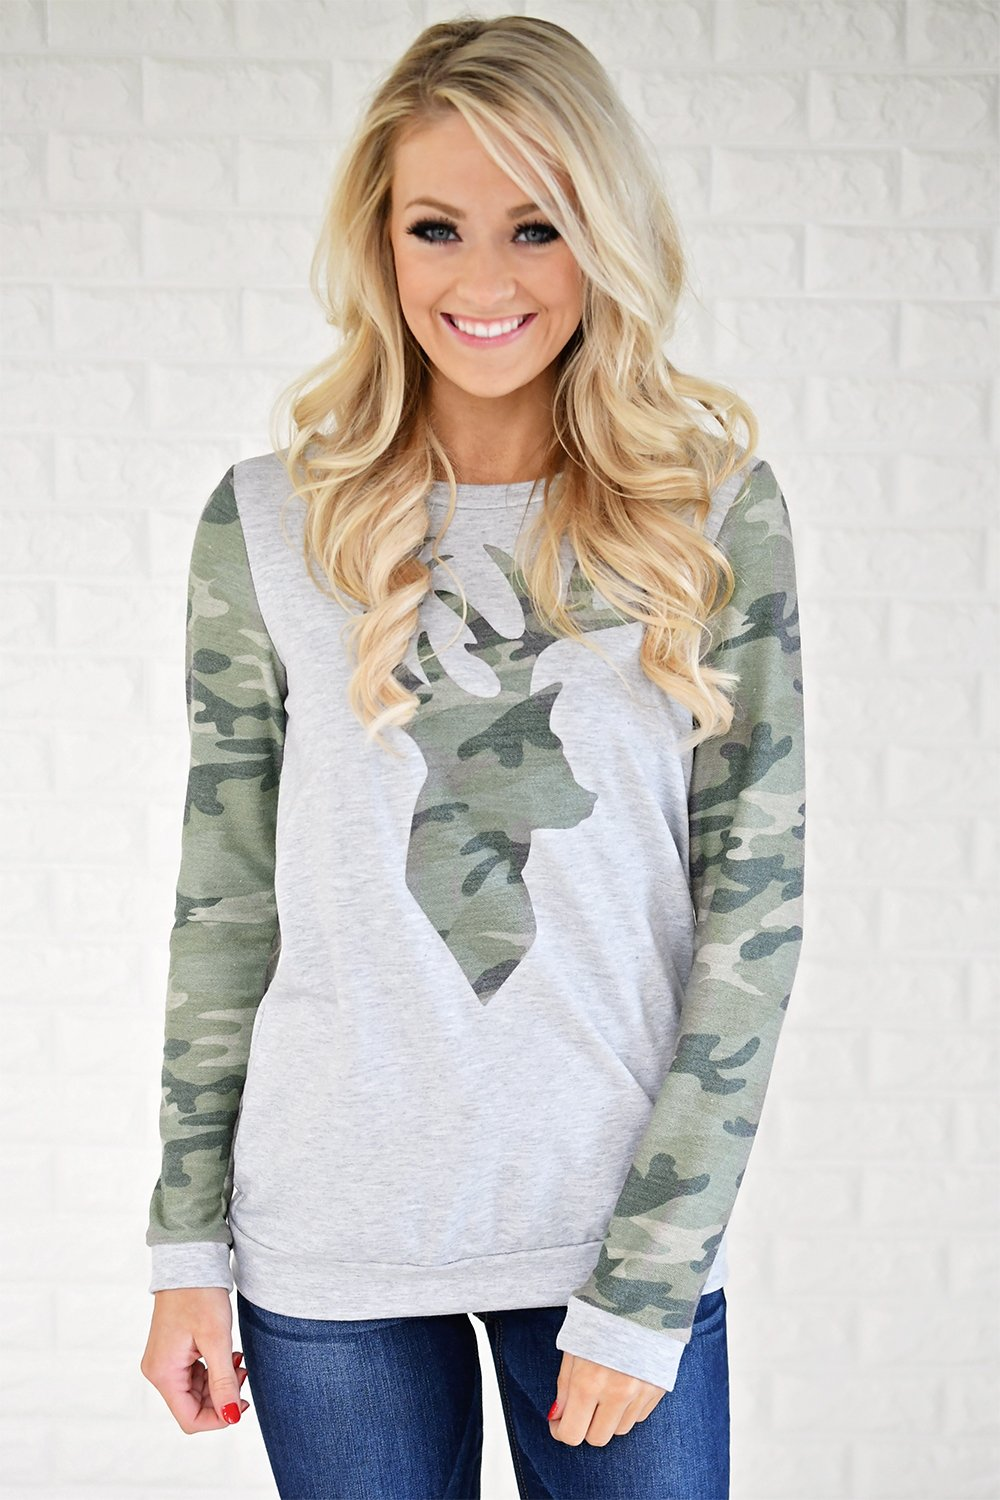 Camo is My Favorite Color Sweater